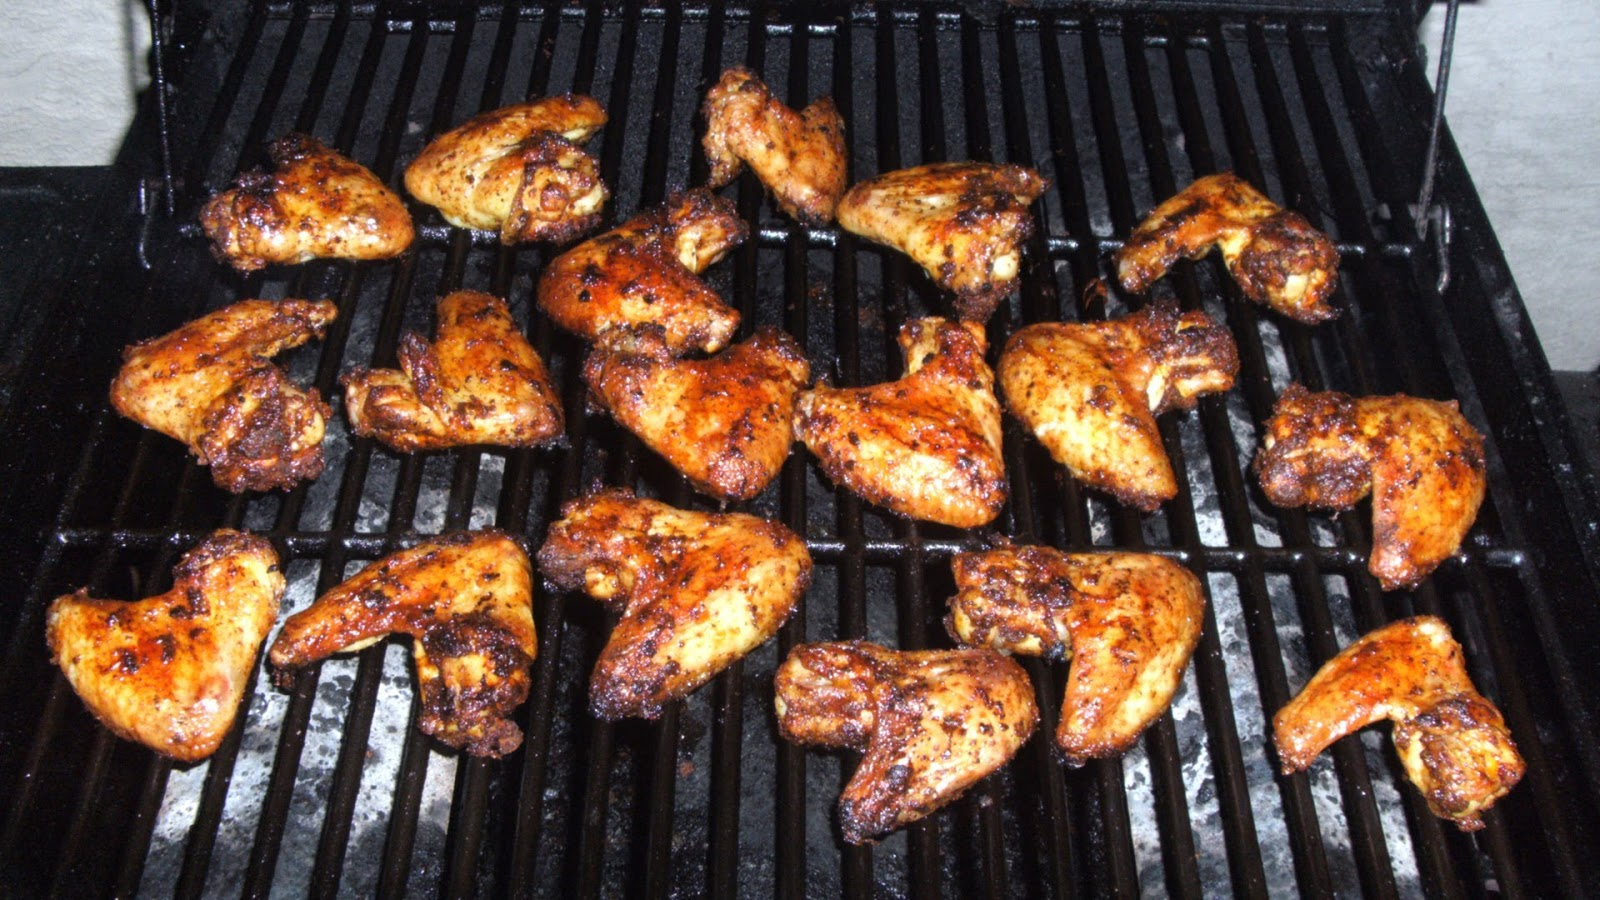 Keep In Mind That Grilling Chicken Allows The Extra Fat To Be Drained Off  So That You Have A Yummy Chicken Entree Without The Extra Fat, Helping To  Make